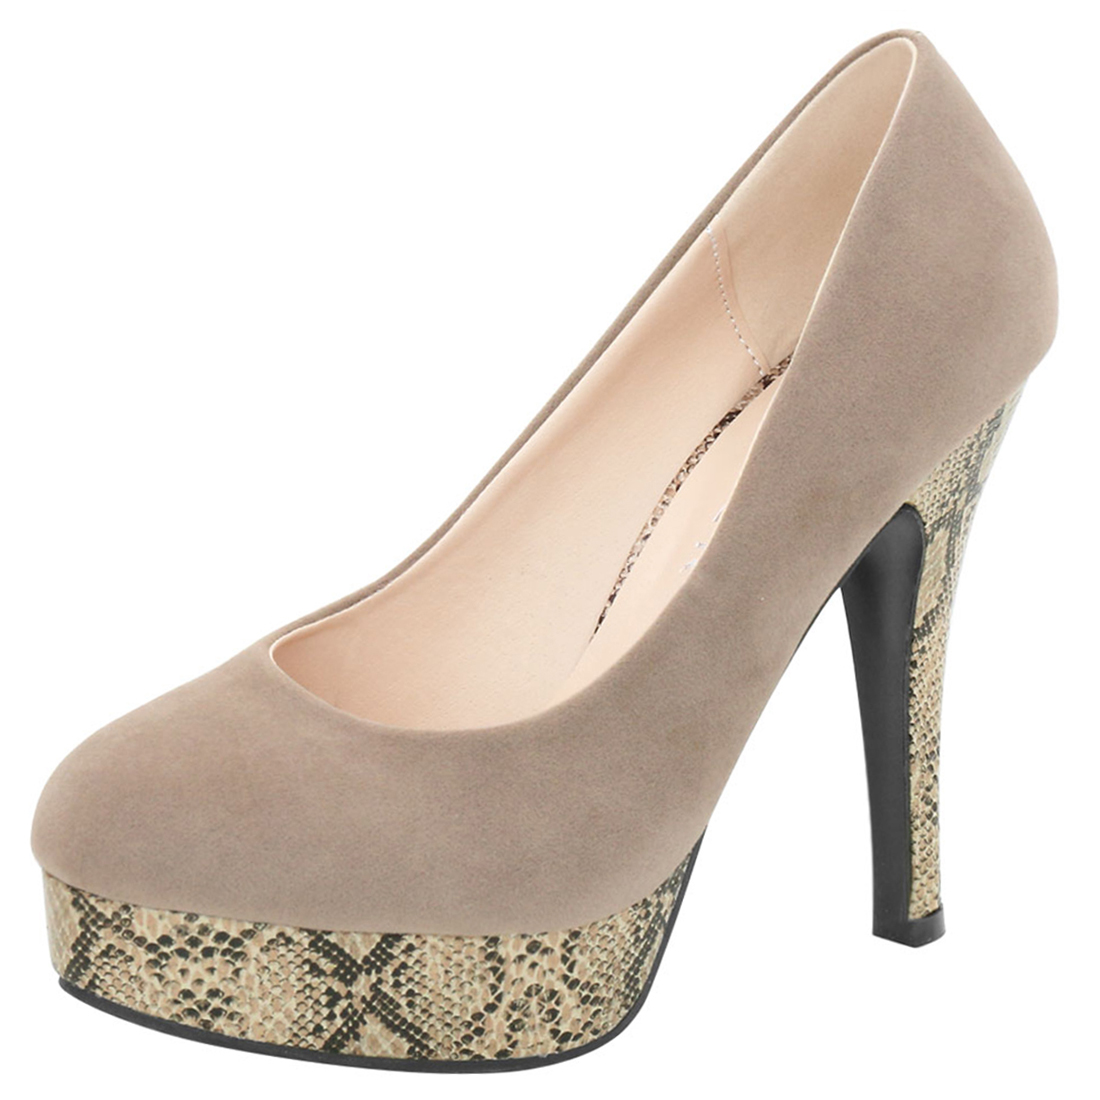 Woman Rounded Toe Snake Effect Stiletto Platform Pumps Taupe US 7